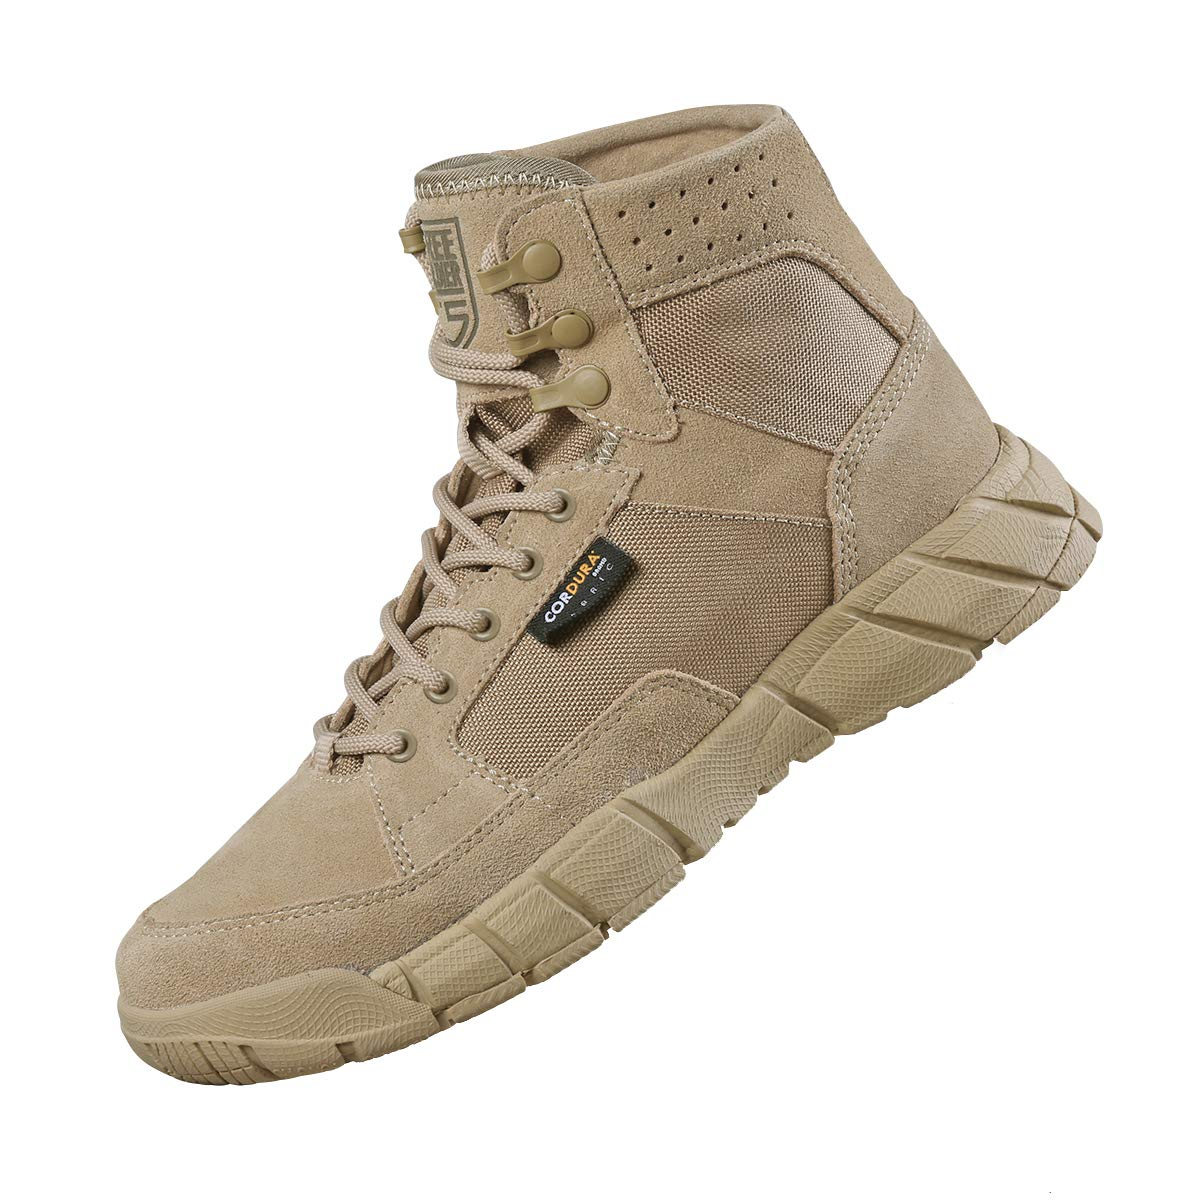 FREE SOLDIER Men's Tactical Boots 6 Inches Summer Lightweight Breathable Desert Boots with Thin Durable Fabric(Tan, 9 US)